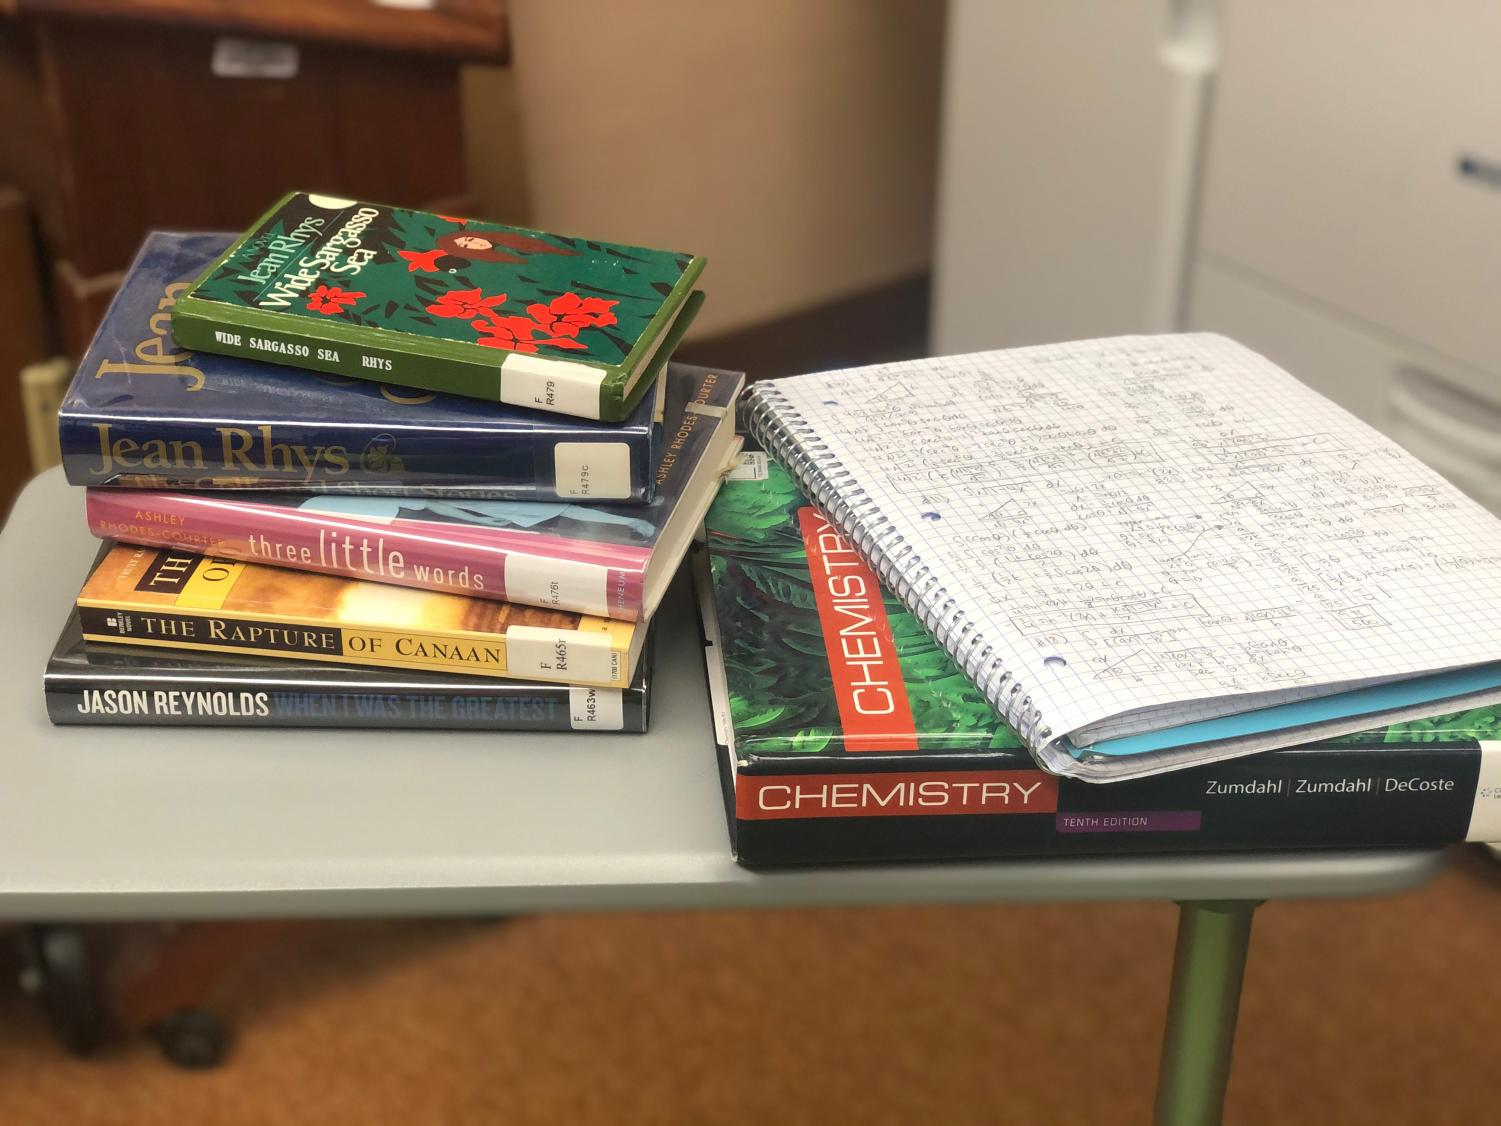 A Webbie's belongings are piled on a desk: chemistry textbook, math notebook, and five library books.